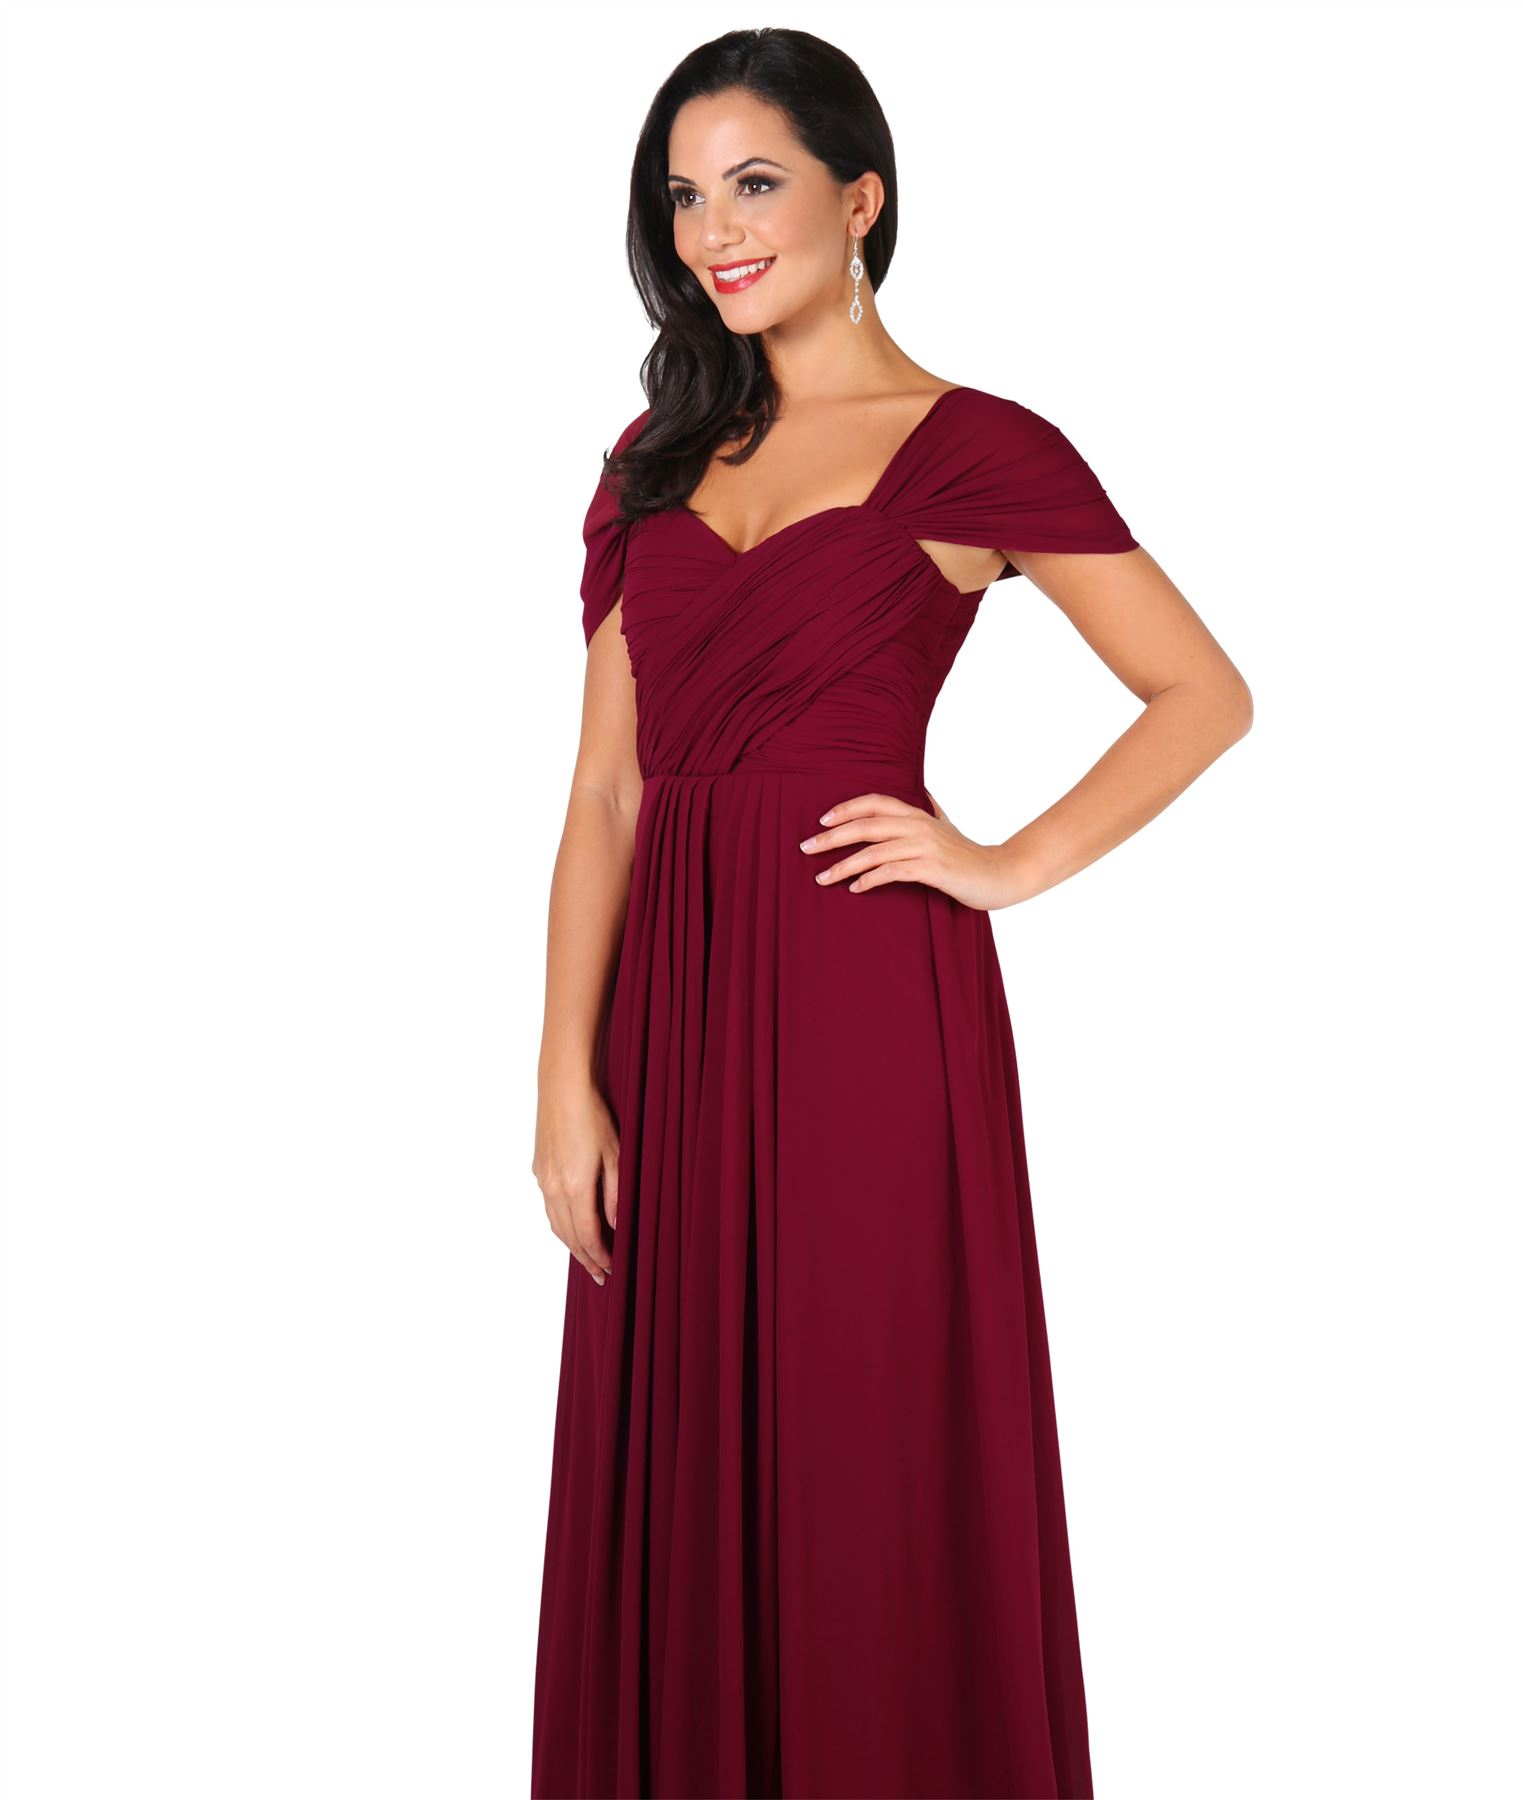 Womens-Formal-Evening-Wedding-Maxi-Prom-Dress-Long-On-Off-Shoulder-Ball-Gown thumbnail 65